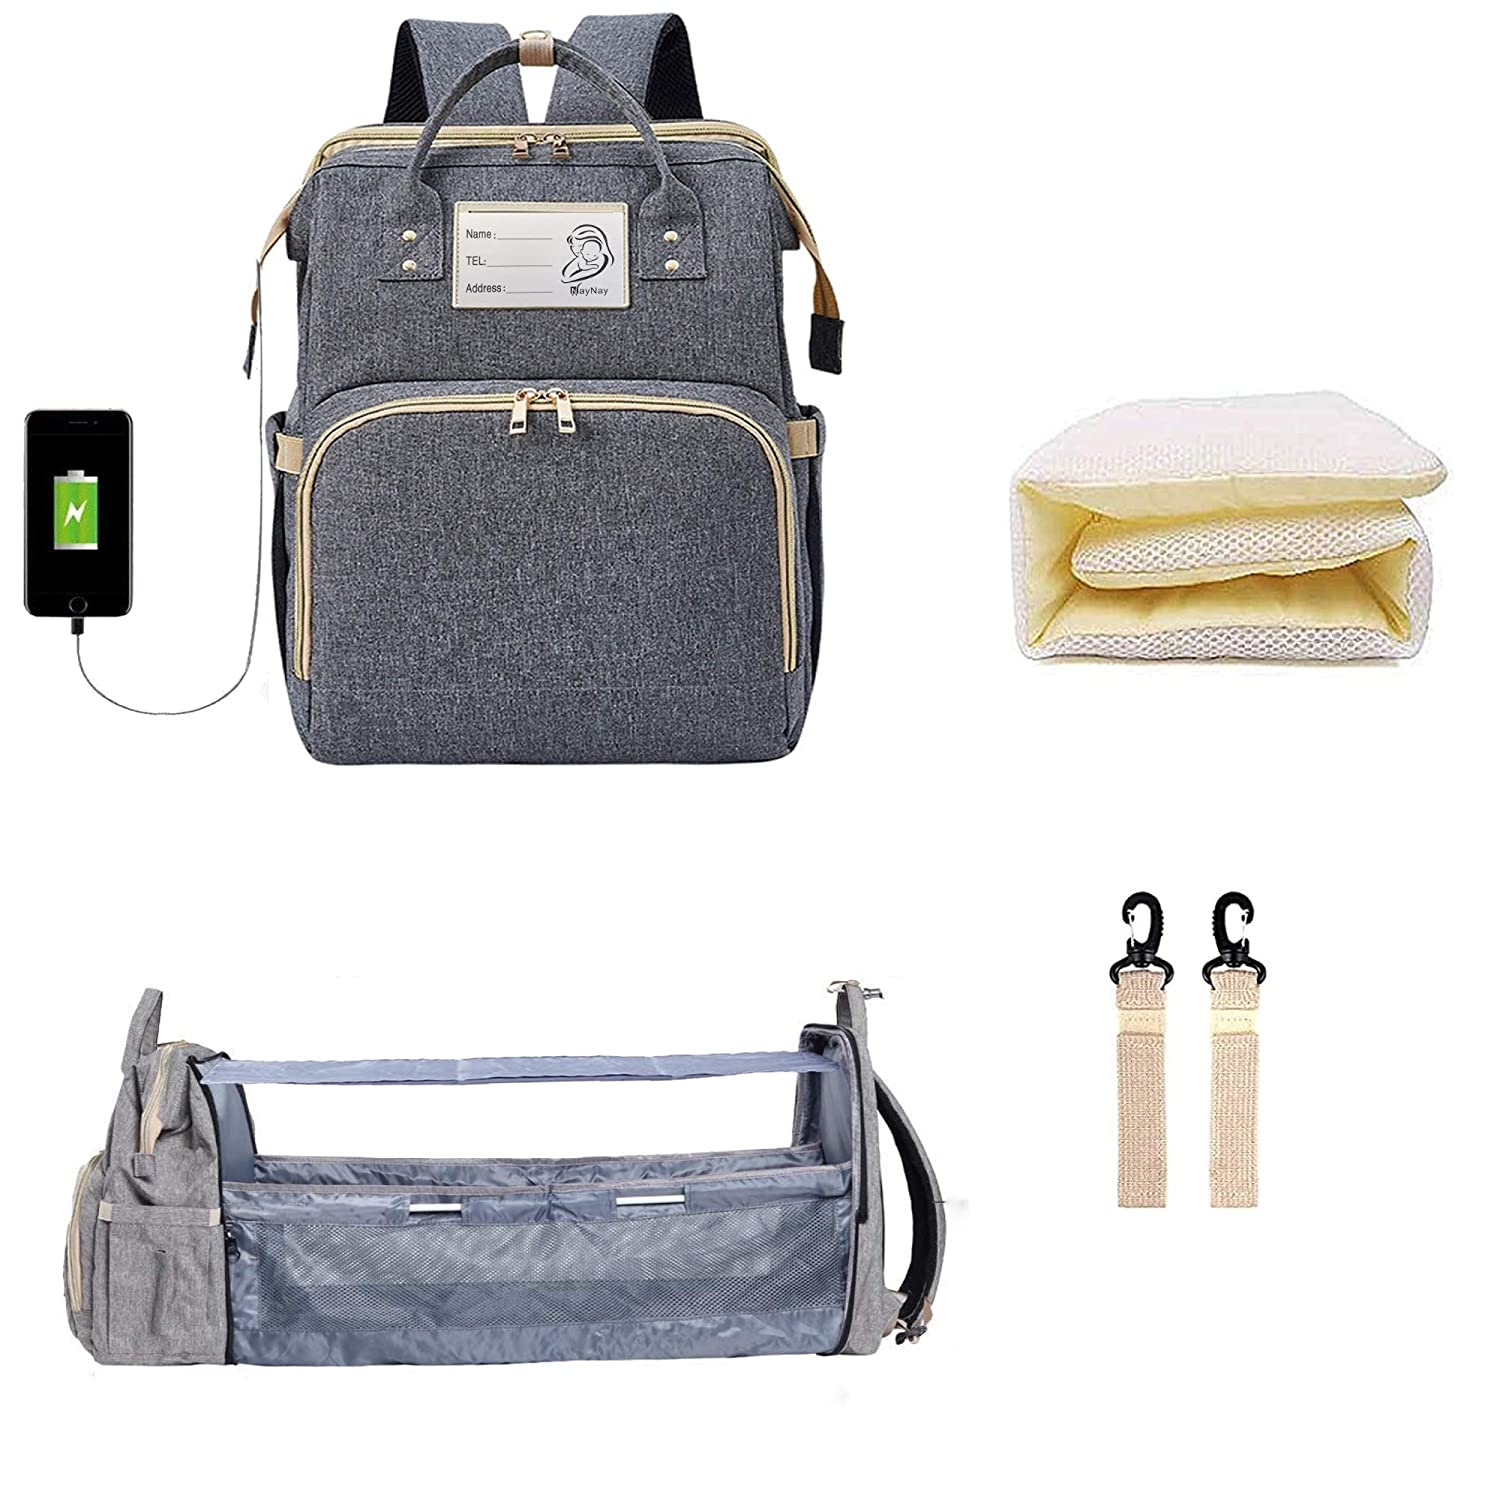 Upgraded 3 in 1 Diaper Bag - Baby Diaper Bag with Changing Station - Baby Diaper Bag Backpack - Includes Bassinet, Foldable Baby Bed, USB Charging Port, Stroller Straps (Grey)